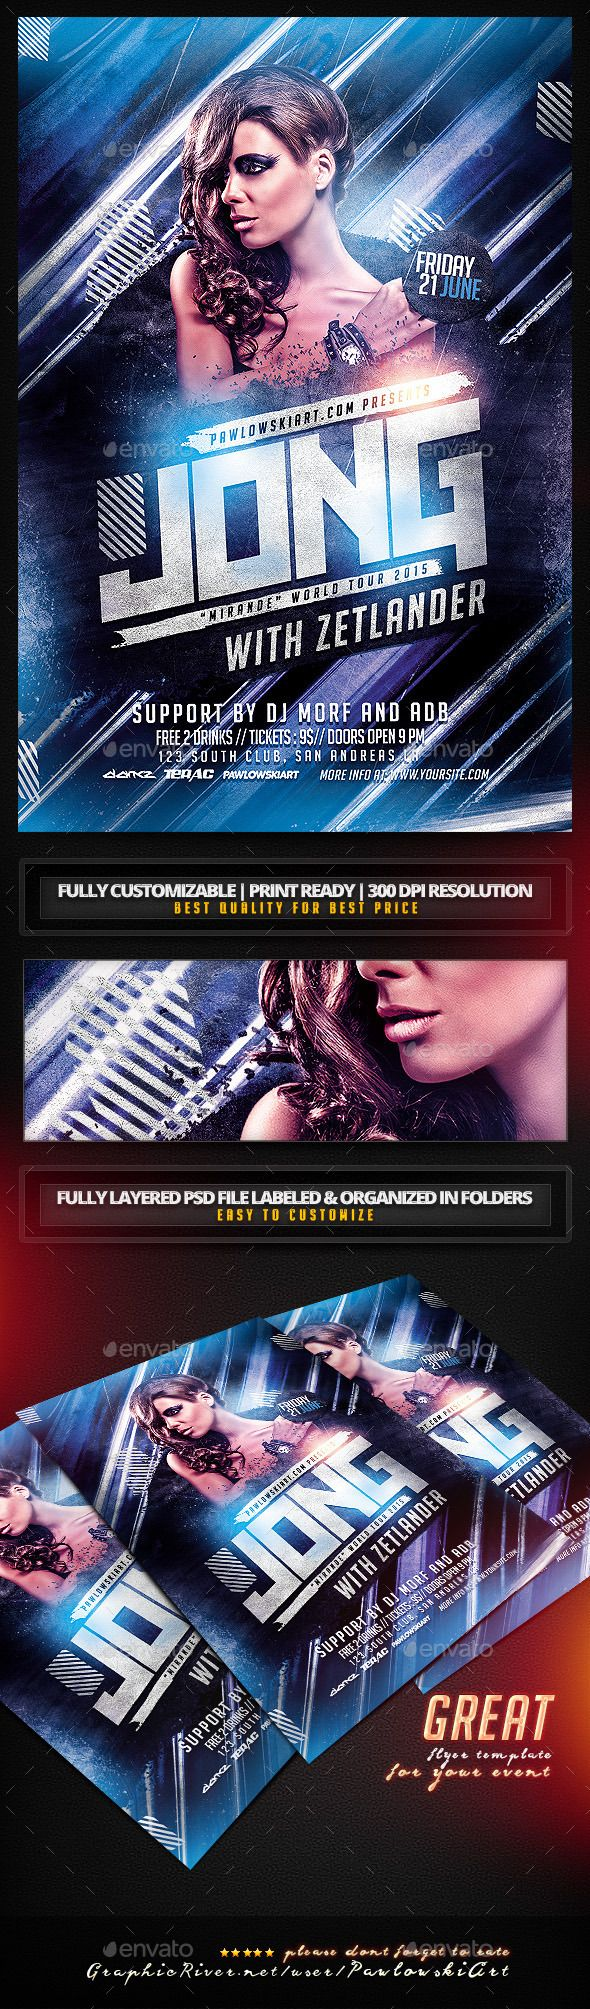 Special Guest DJ v3 PSD Flyer Template - Clubs & Parties Events